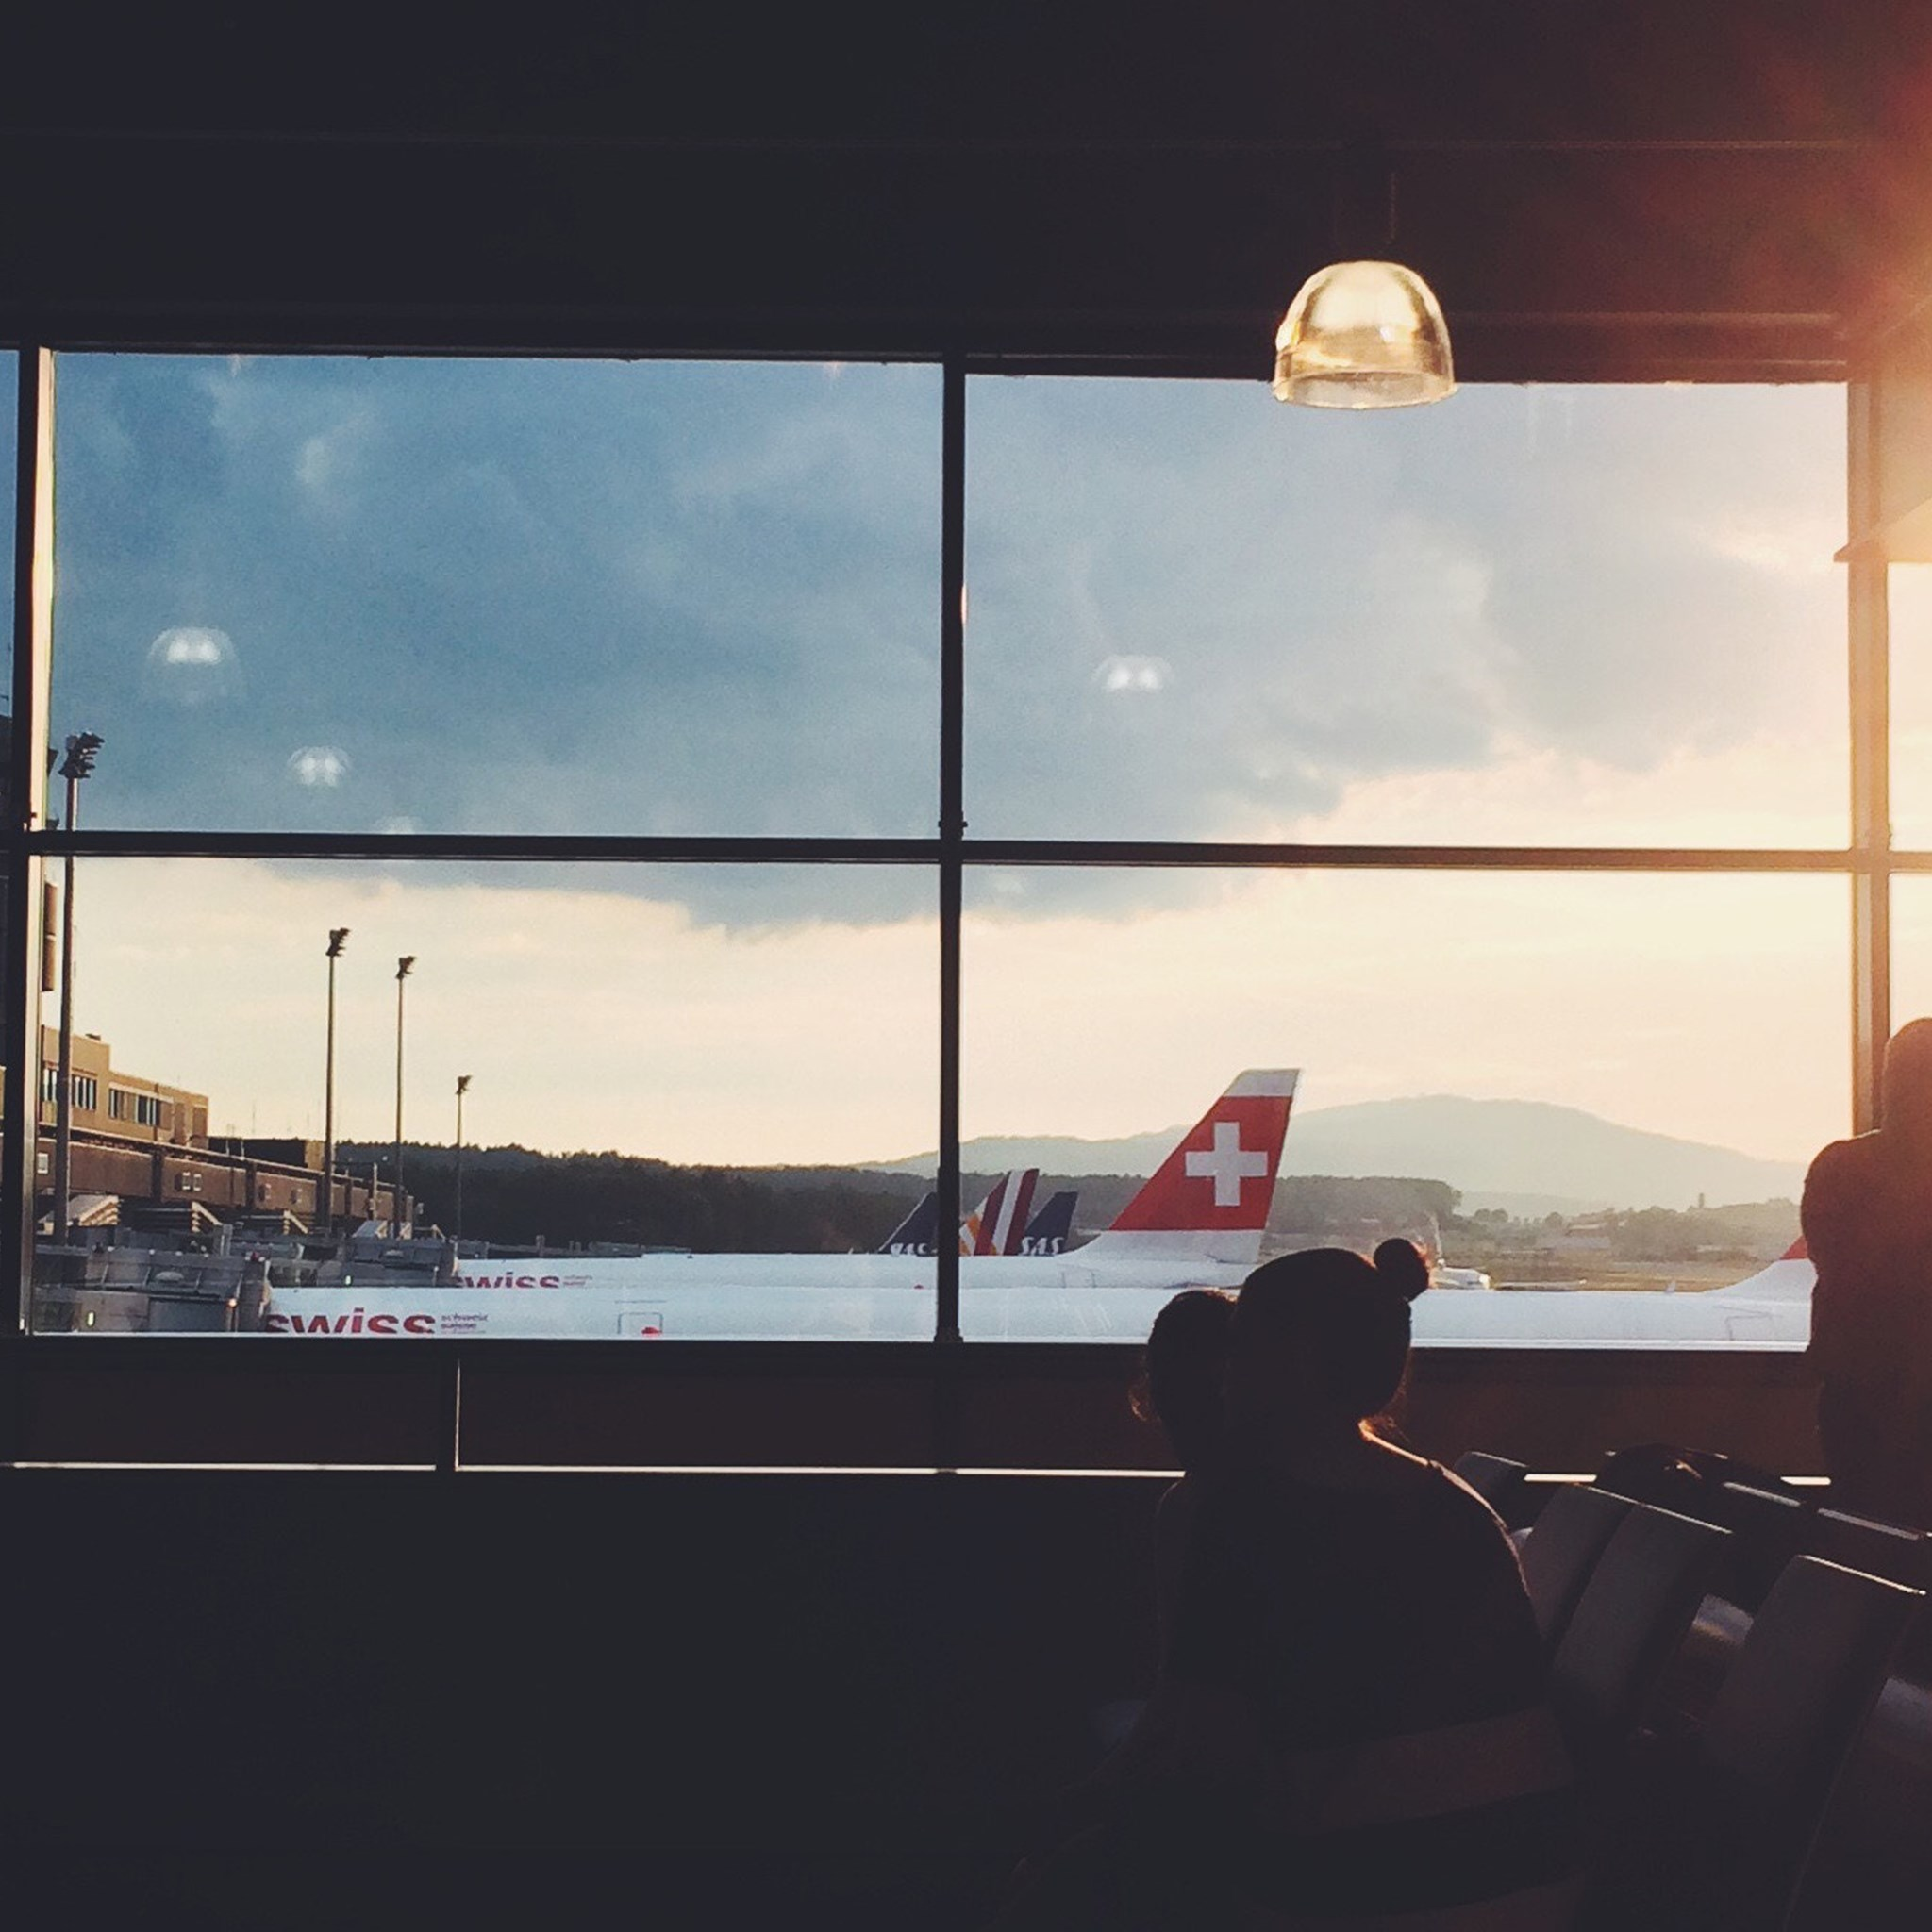 Zurich Airport. Photo by Philipp Dubach on Unsplash.